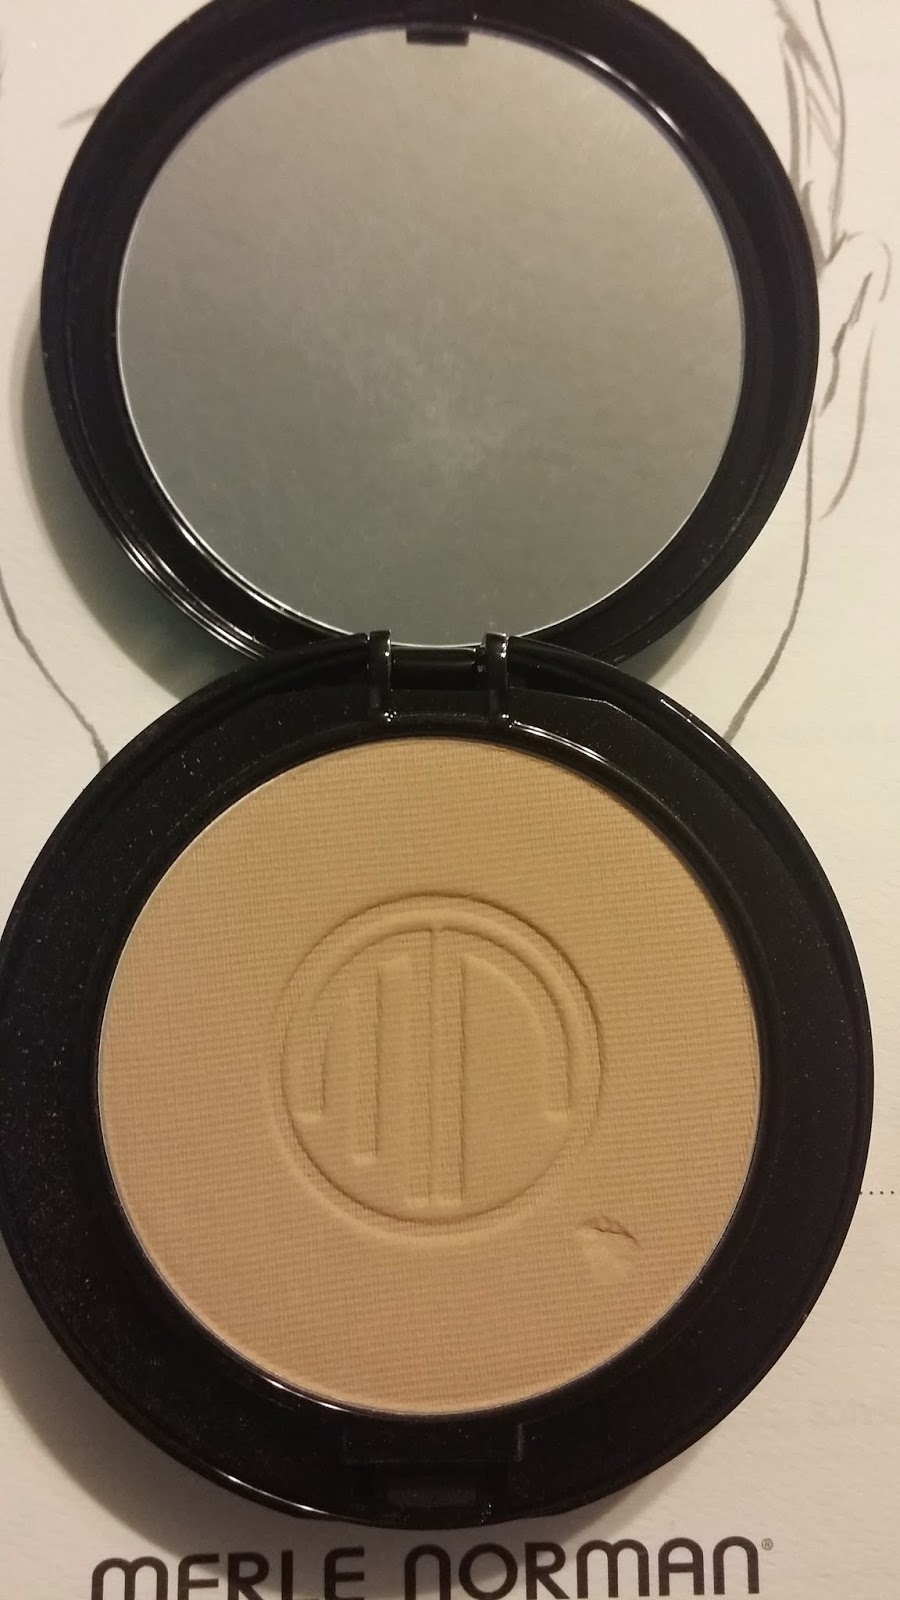 The Makeup Diva: PRODUCT REVIEW | Merle Norman